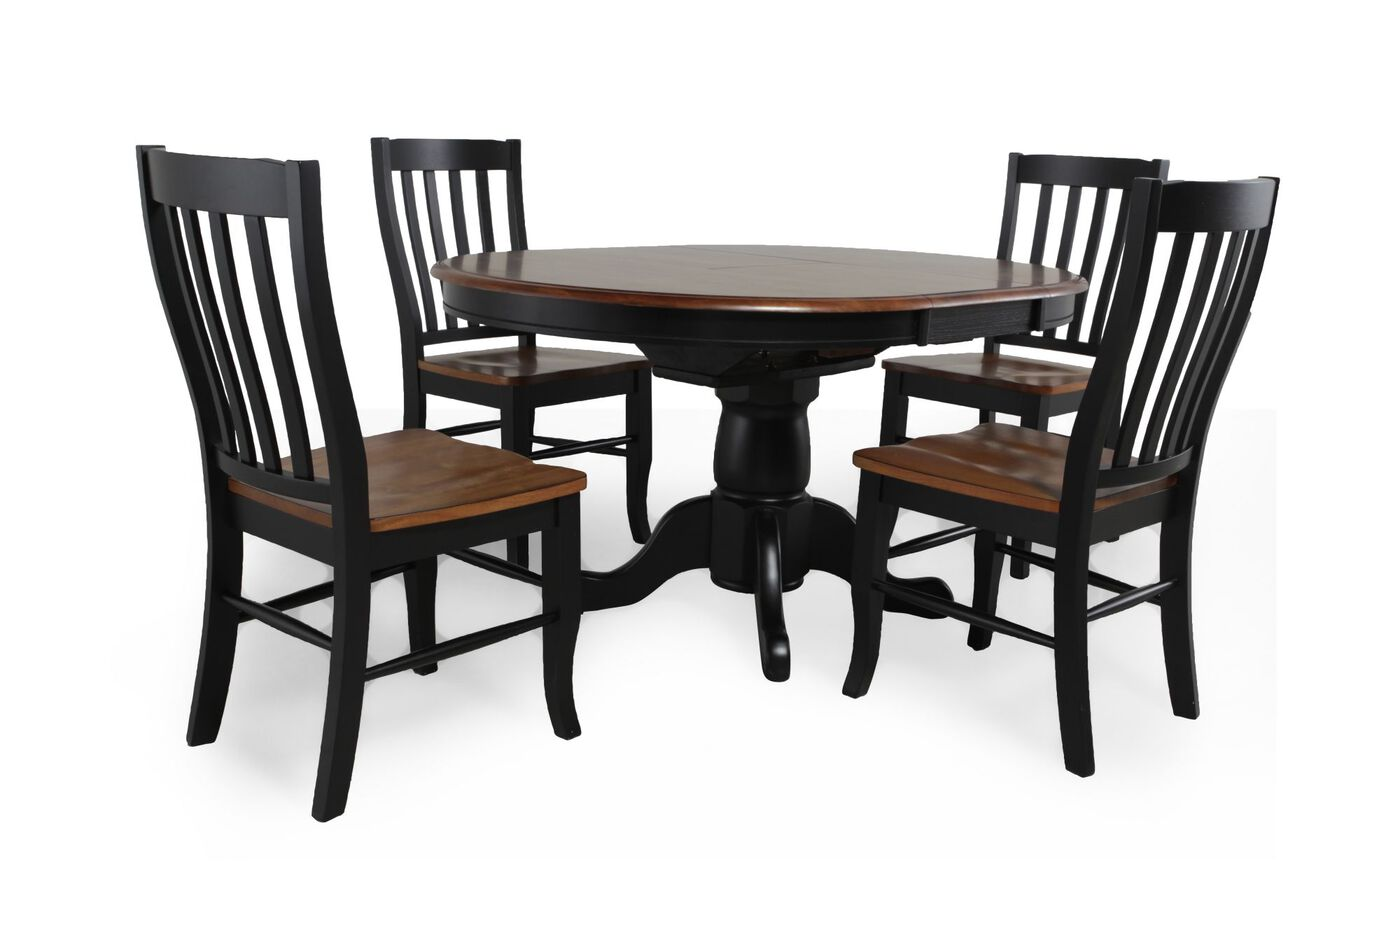 Five piece traditional round extension 42 39 39 to 57 39 39 dining for Traditional round dining room sets